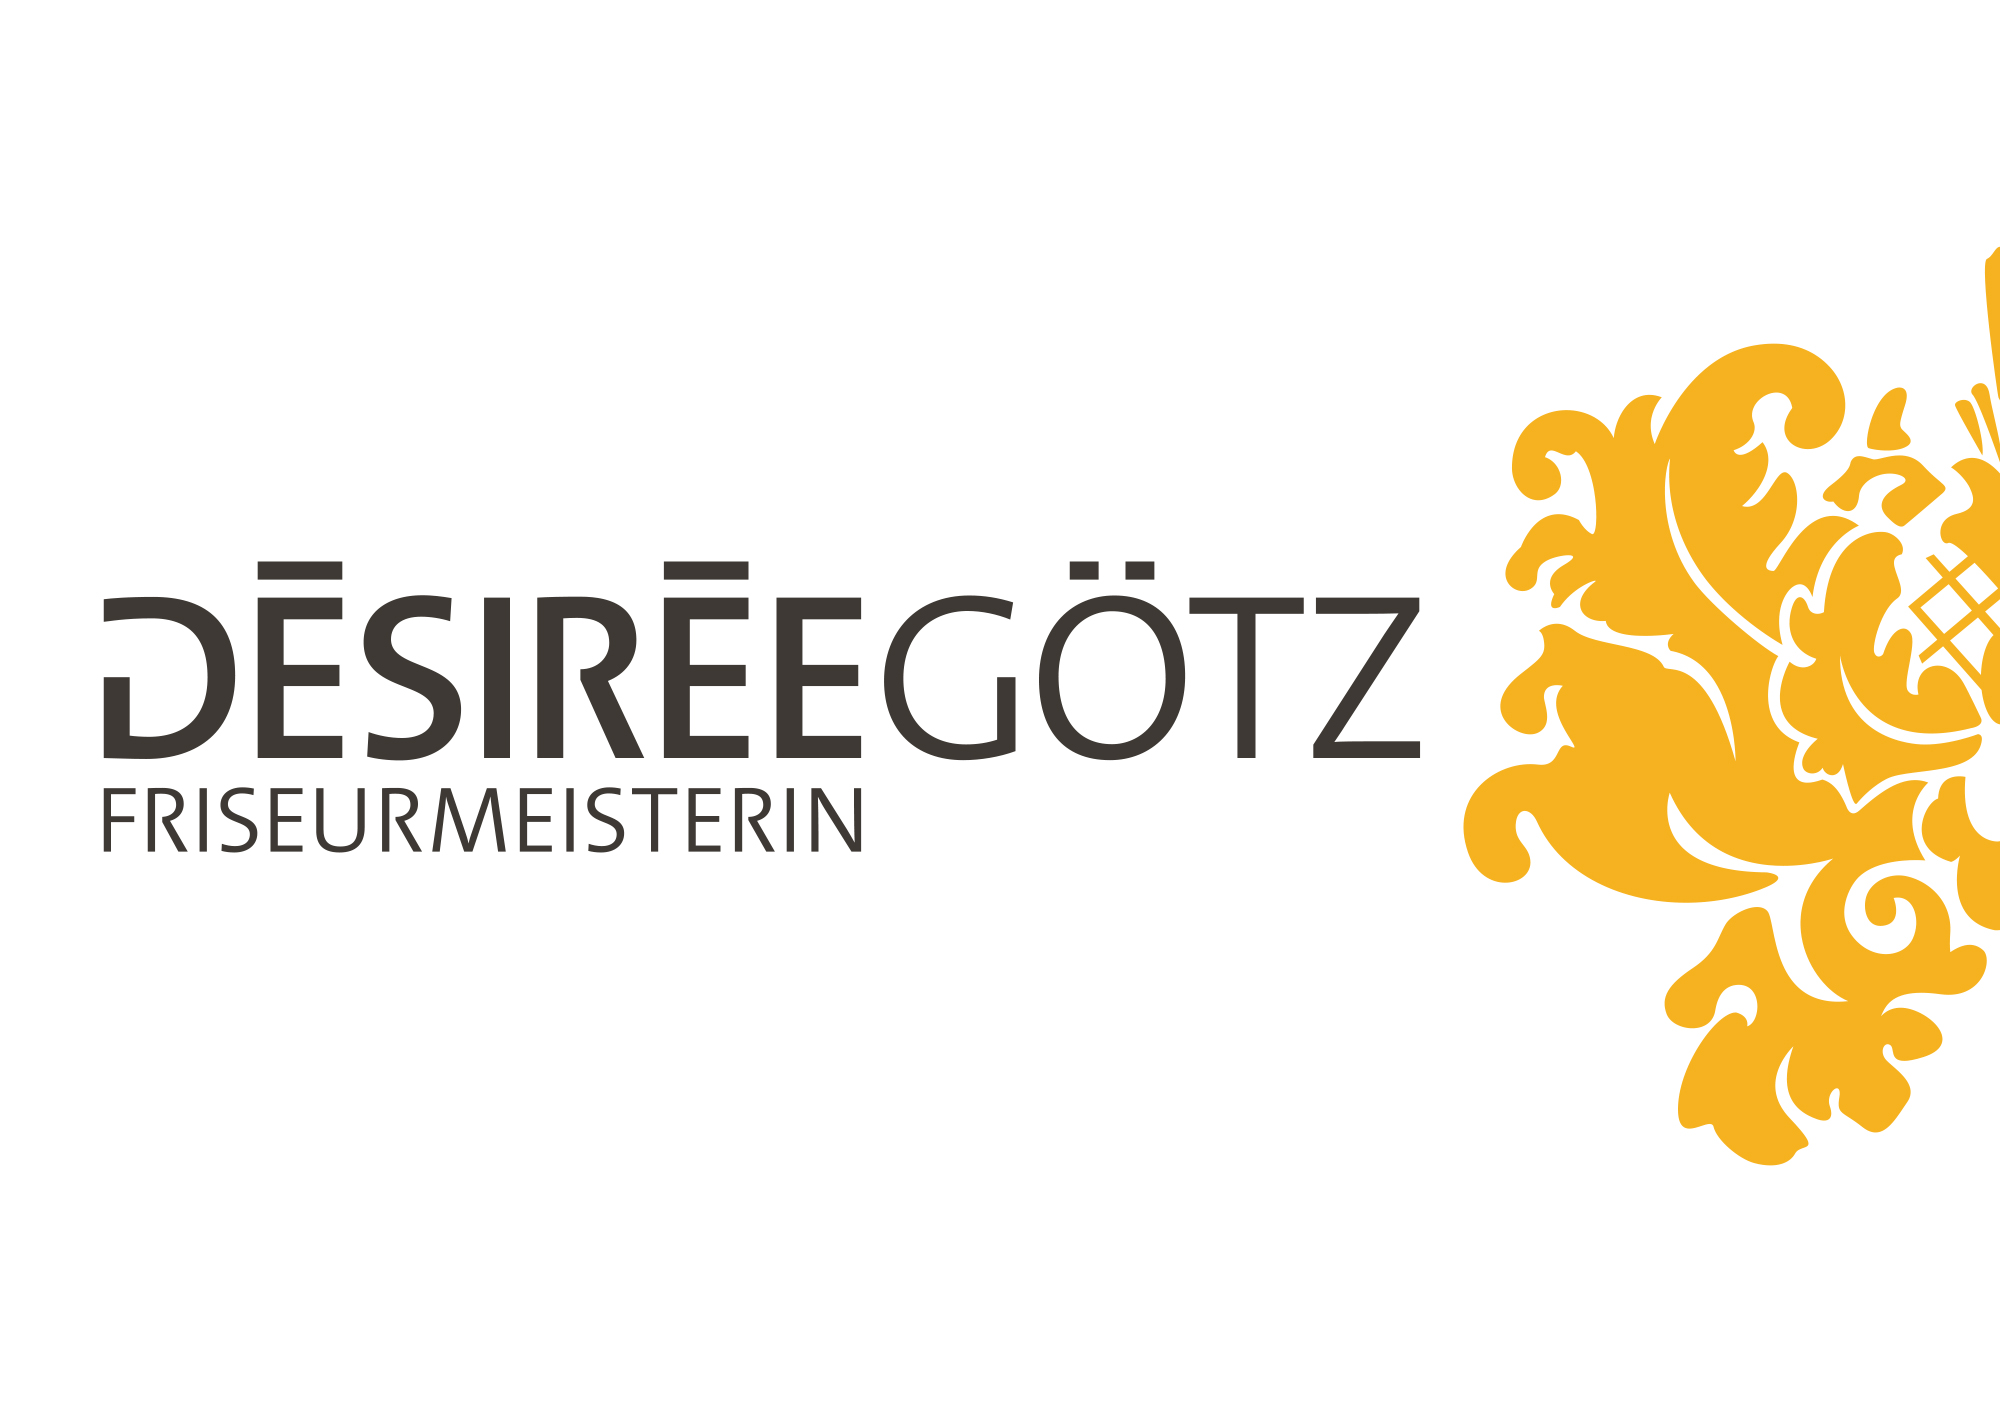 DesireeGoetz_Logo_Right.jpg?fit=2000%2C1414